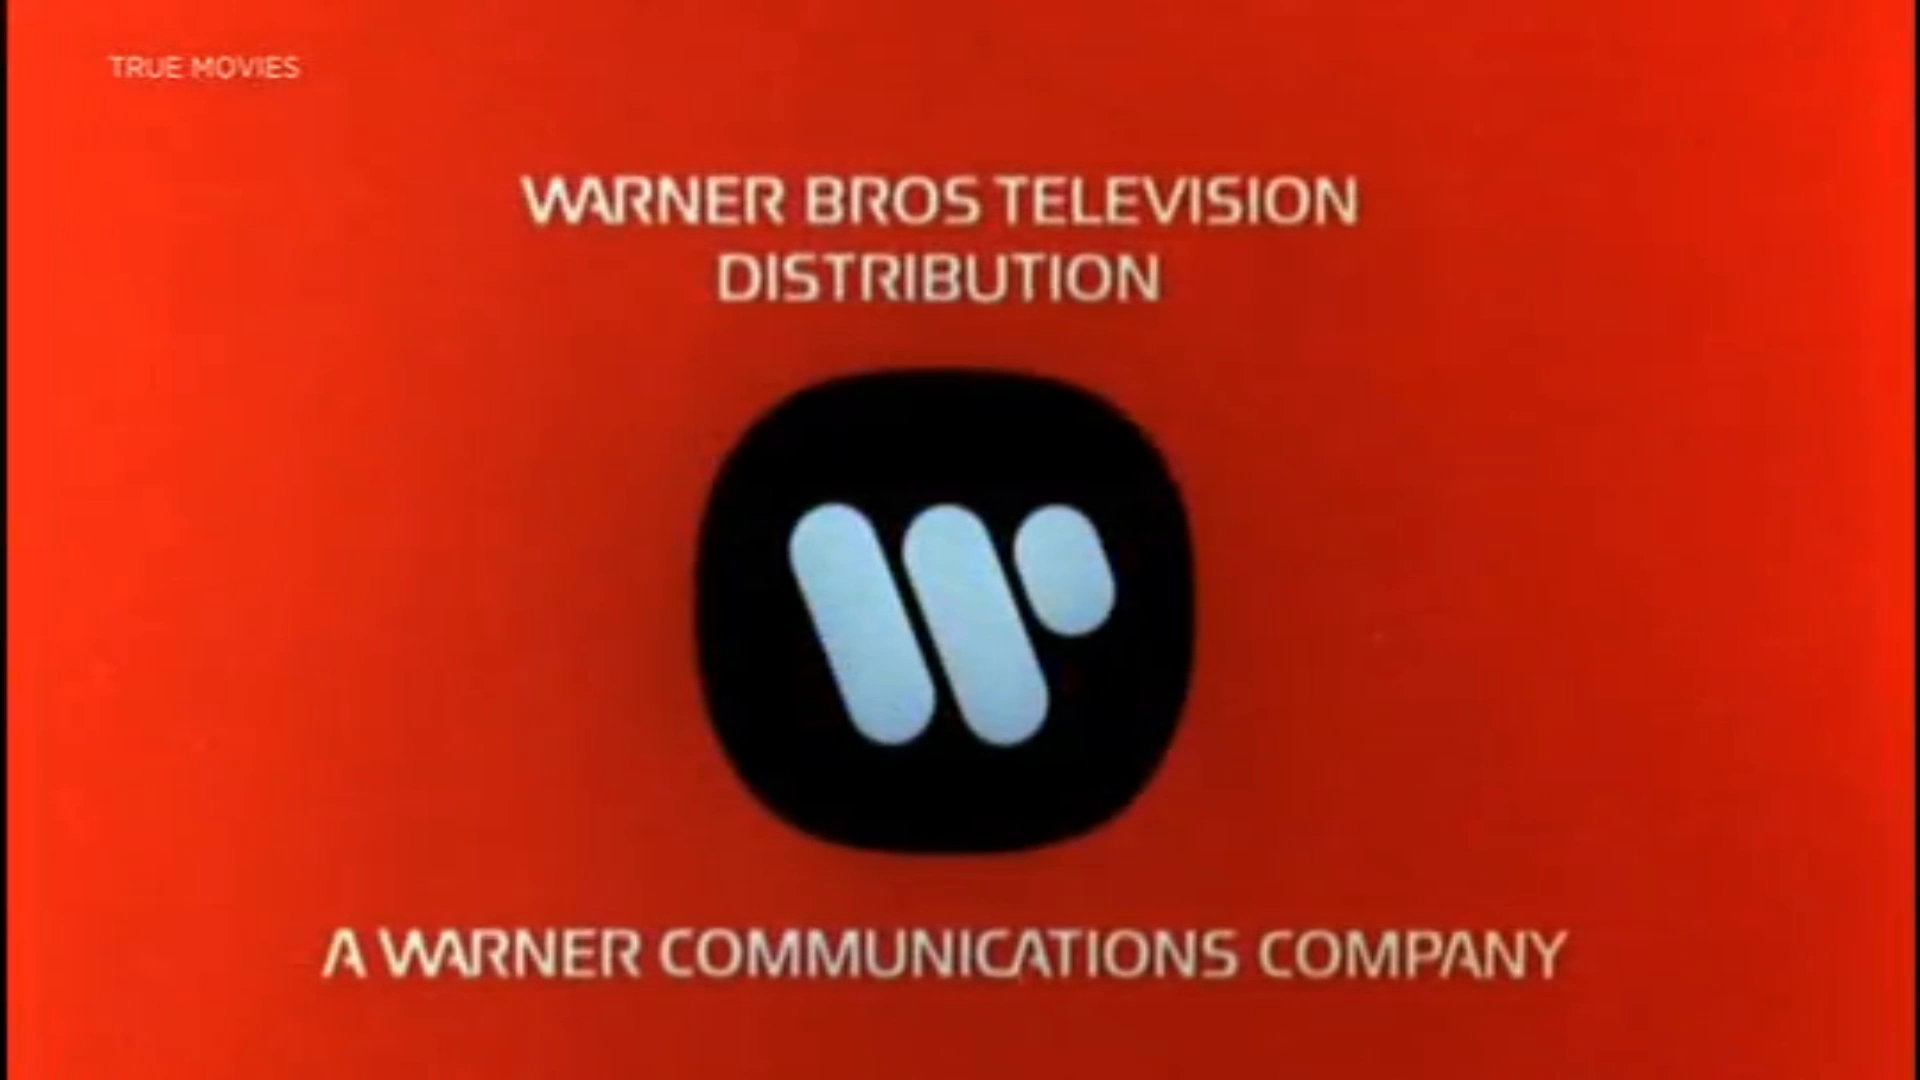 Warner Bros. Television Distribution (1982) [16:9 cropped]